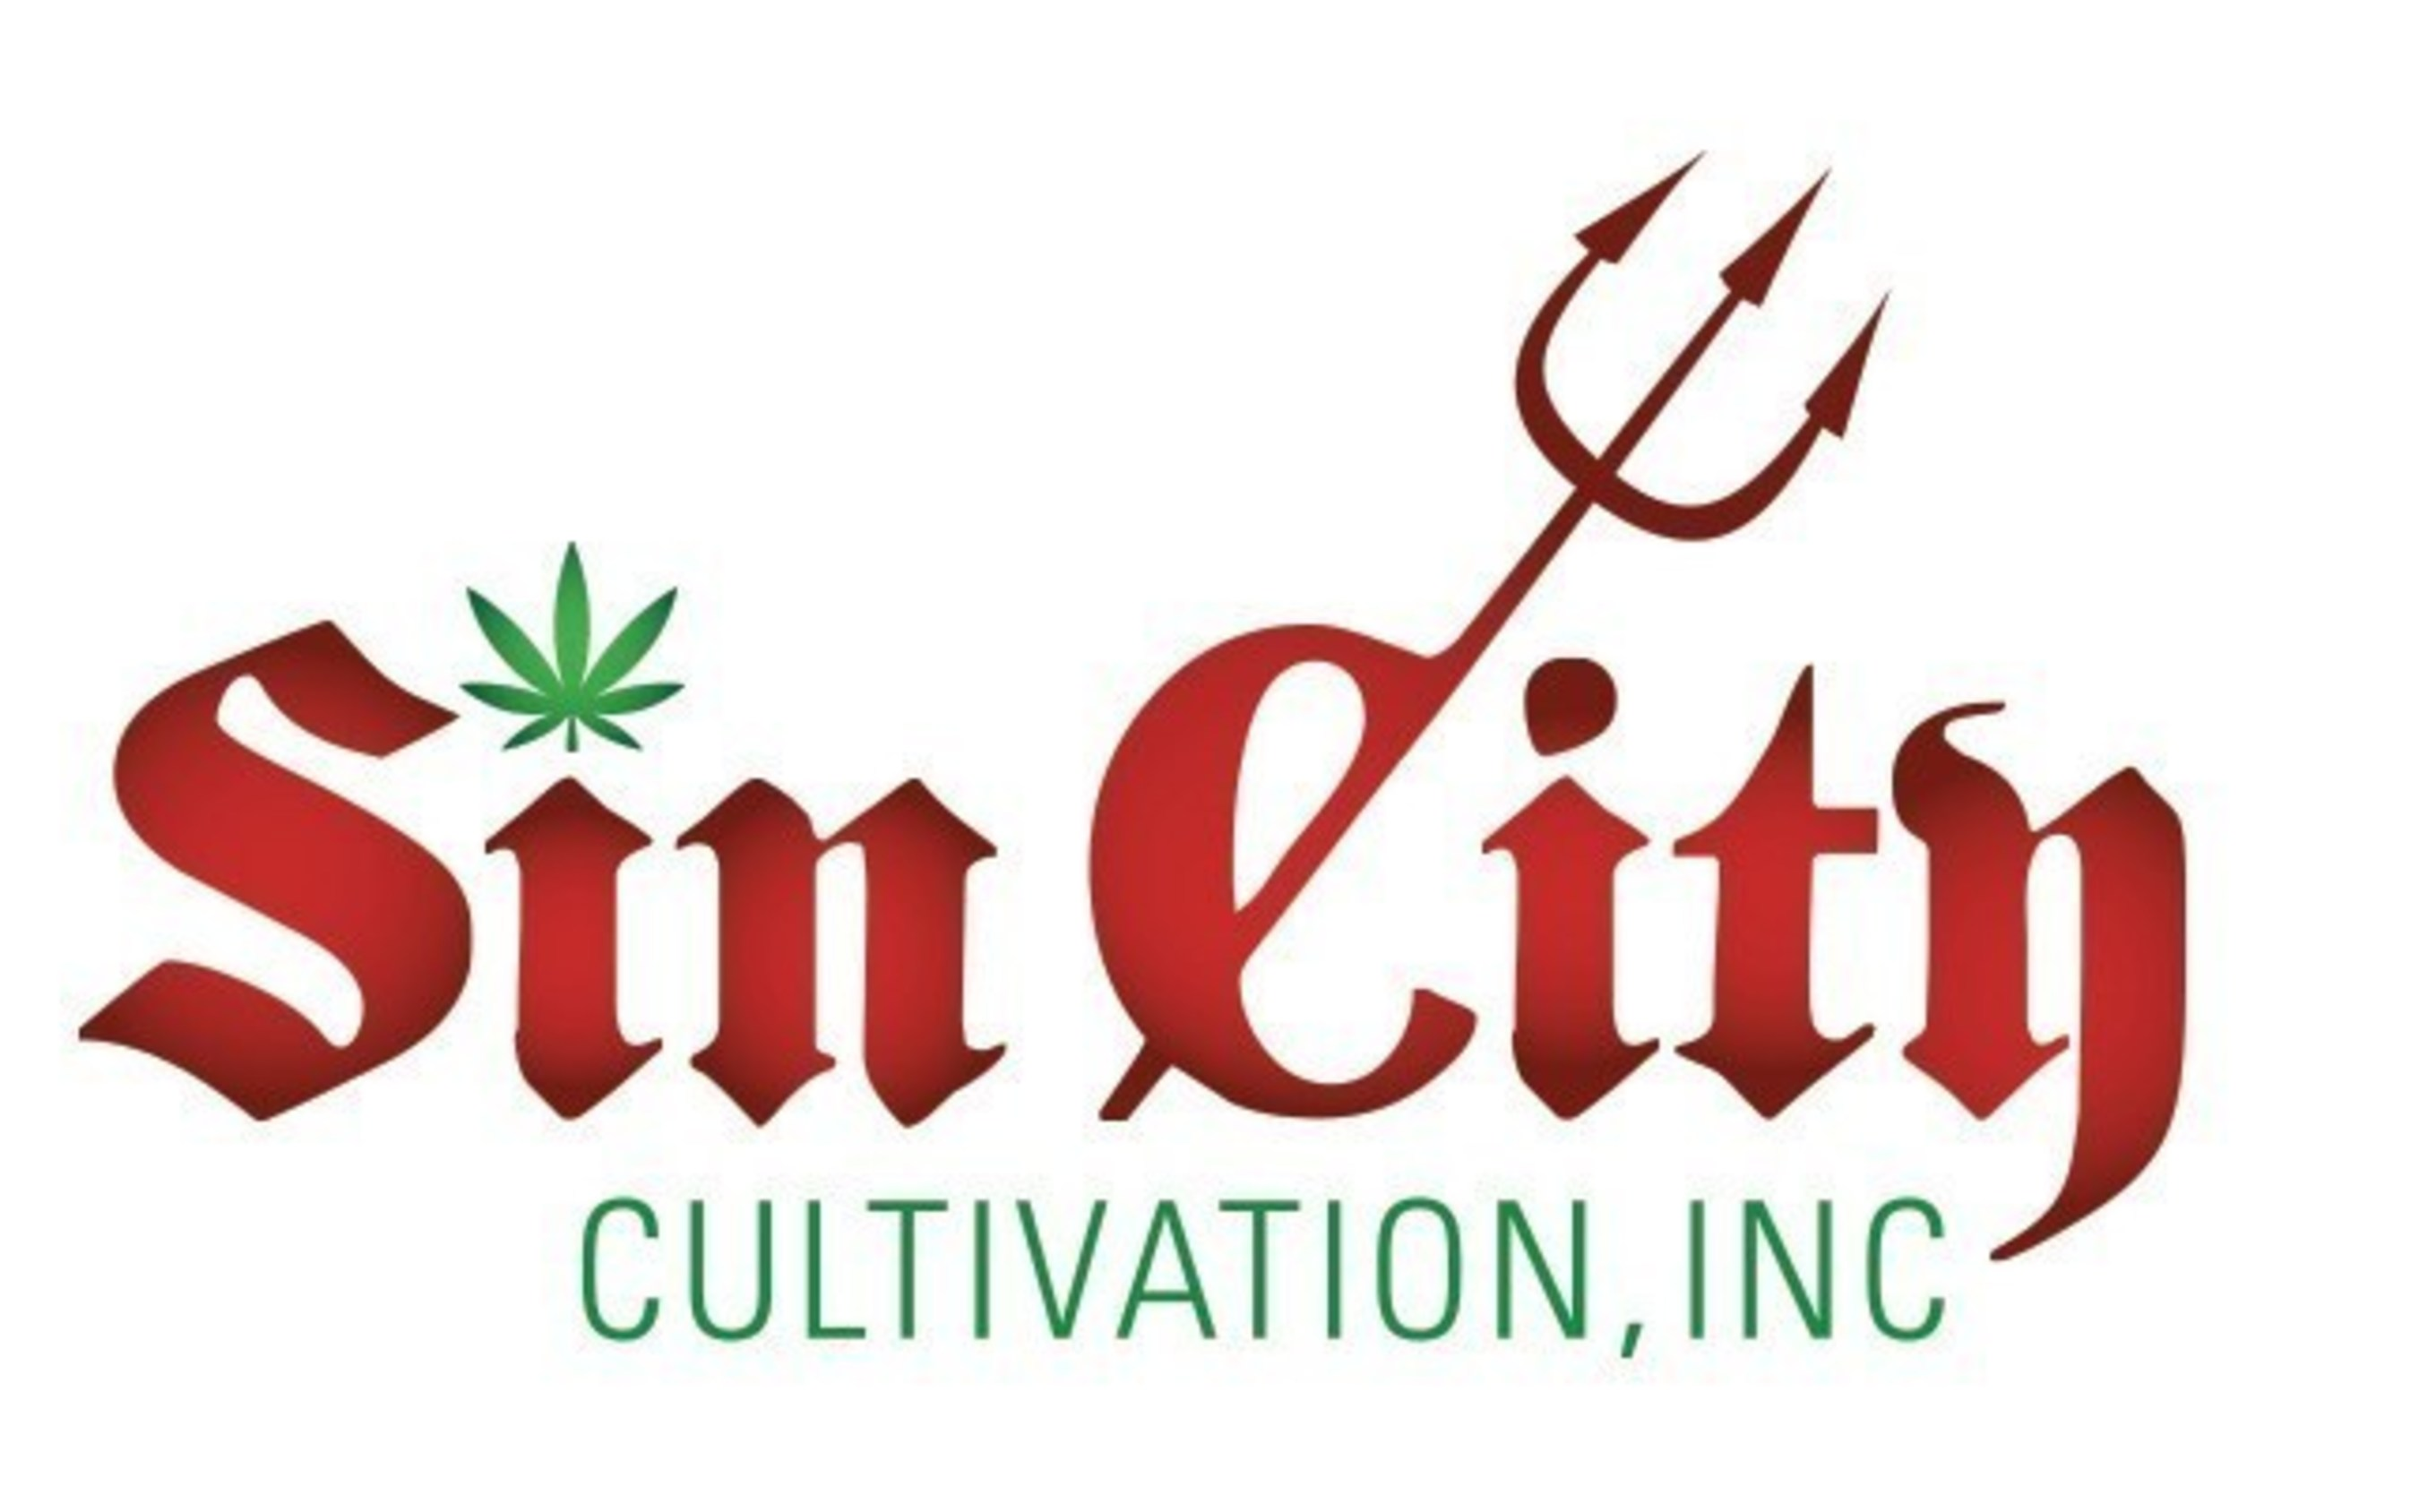 Former Nevada State Senator, Sandra Tiffany, Joins the Sin City Cultivation, Inc. Executive Team